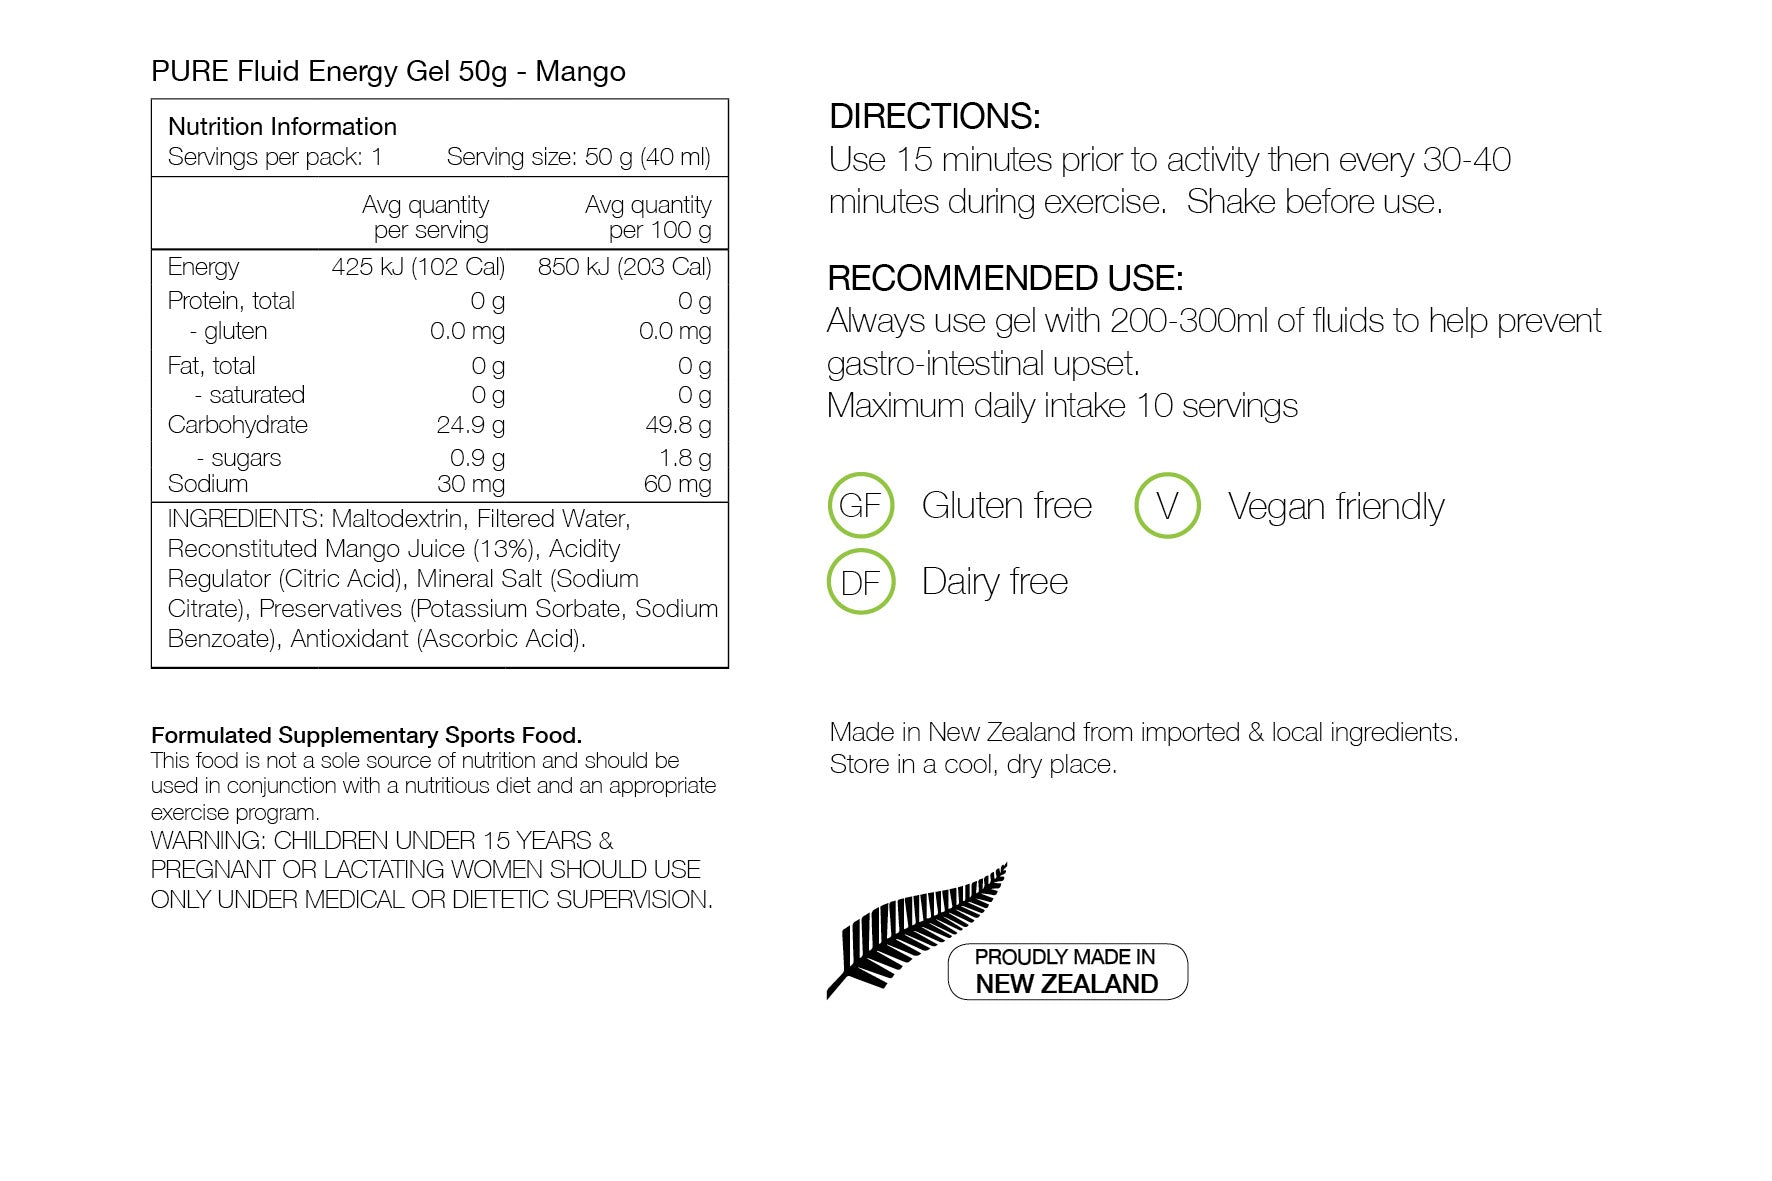 PURE NUTRITION | Fluid Energy Gel Box - Mango Nutrition Sheet